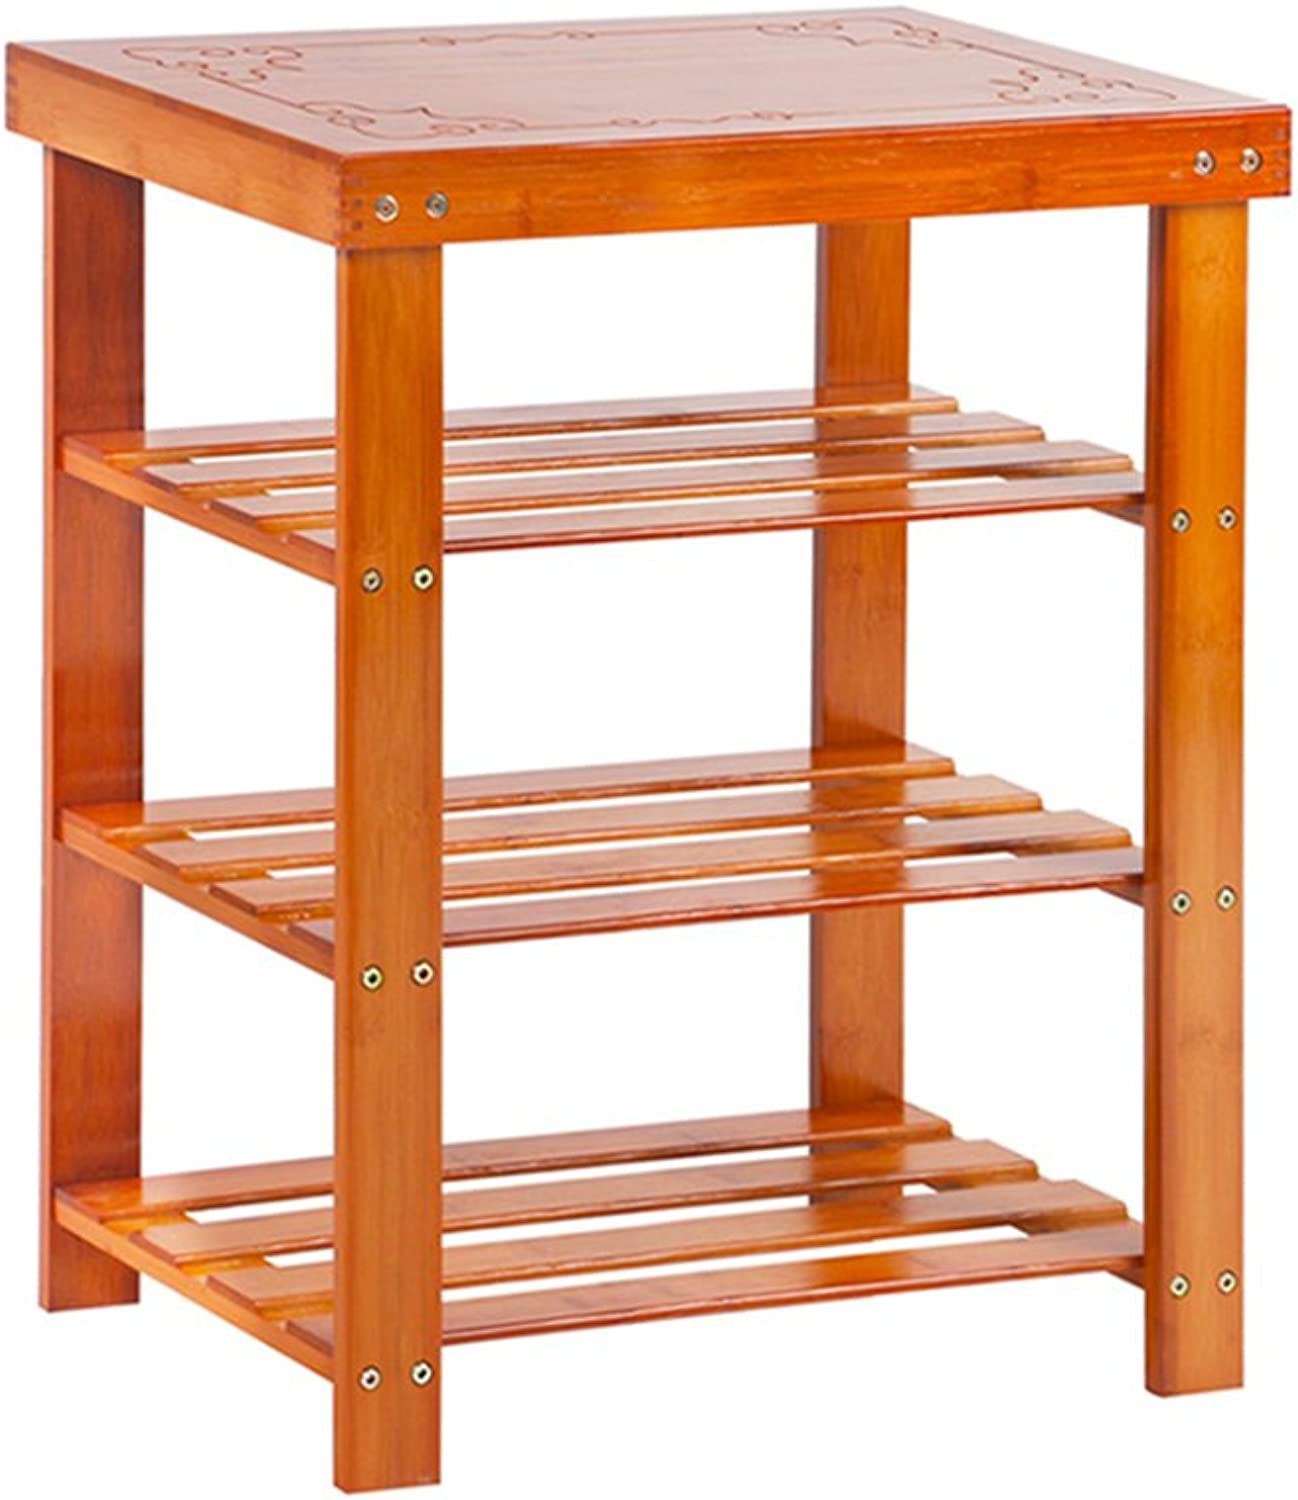 ZHIRONG shoes Rack 2 Tier Bamboo shoes Rack Bench Changing shoes Stool,Storage Organiser Holder Made 100% Natural Bamboo